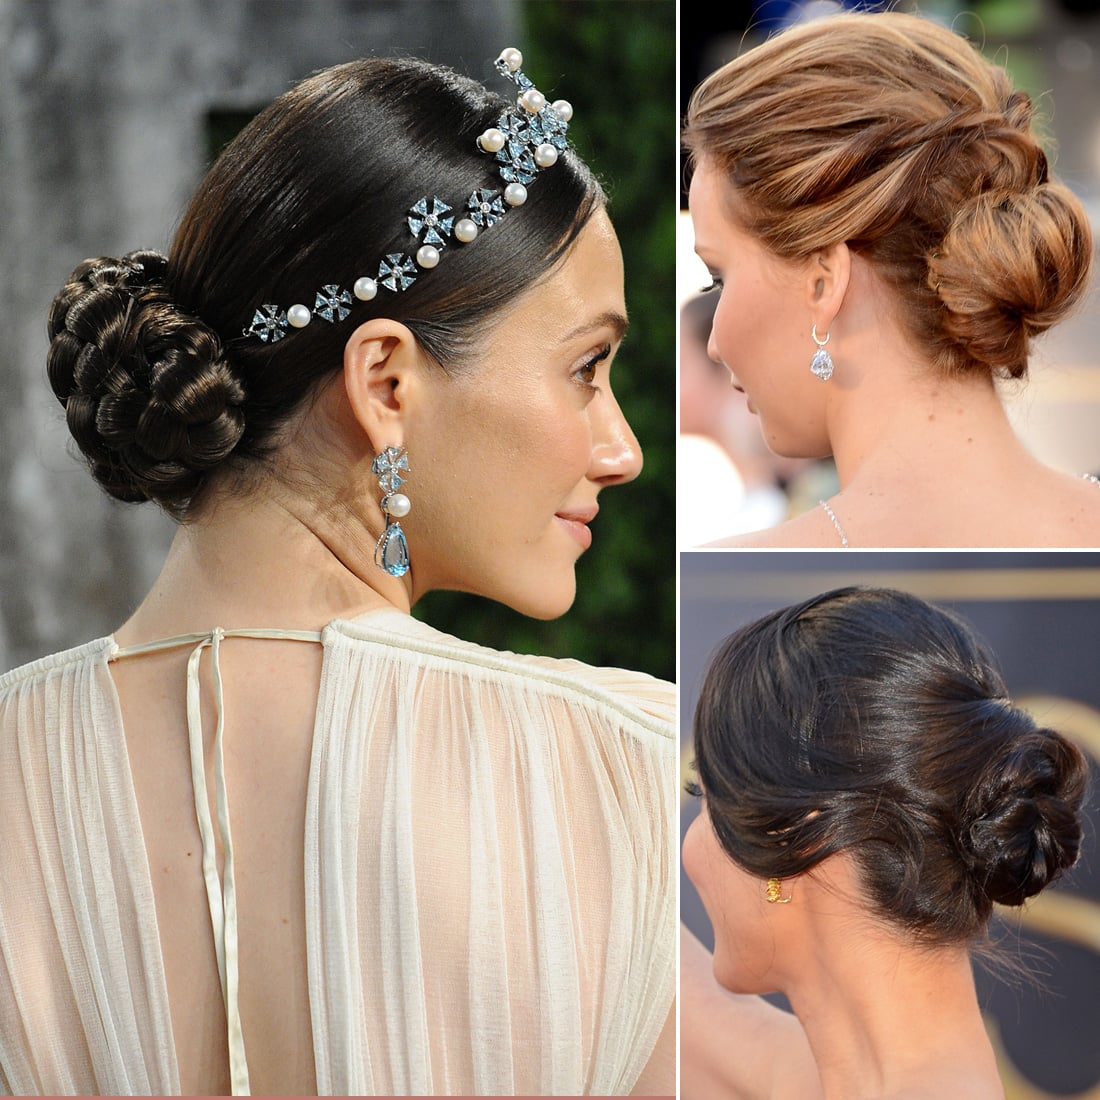 Awesome The Dressy Bun The 12 Hottest Beauty Trends From Oscars Night Hairstyles For Women Draintrainus